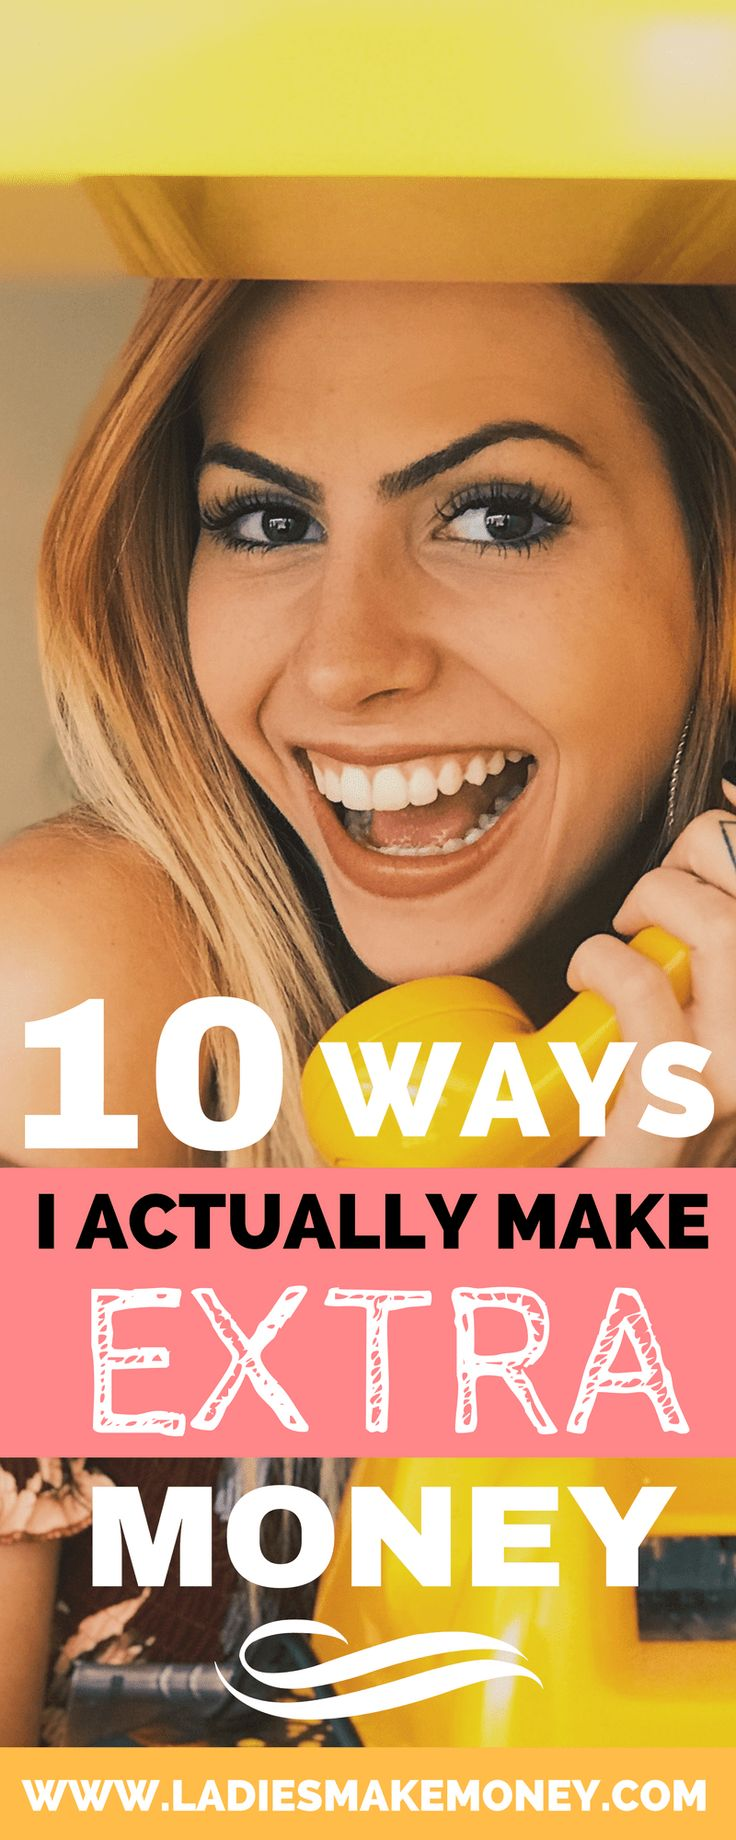 How to make extra money from home fast. Here are 10 ways we actually make more money by side hustling. Want to make more money online? We have the tips you can use to make money blogging or online from home. If you are looking for extra money and want to work from home then read this. If you are looking for extra ways to make extra money fast then read this. This post shares some ways you can make extra money this month from side hustles.. #makemoneyfromhome #makemoneyblogging #bloggingtips